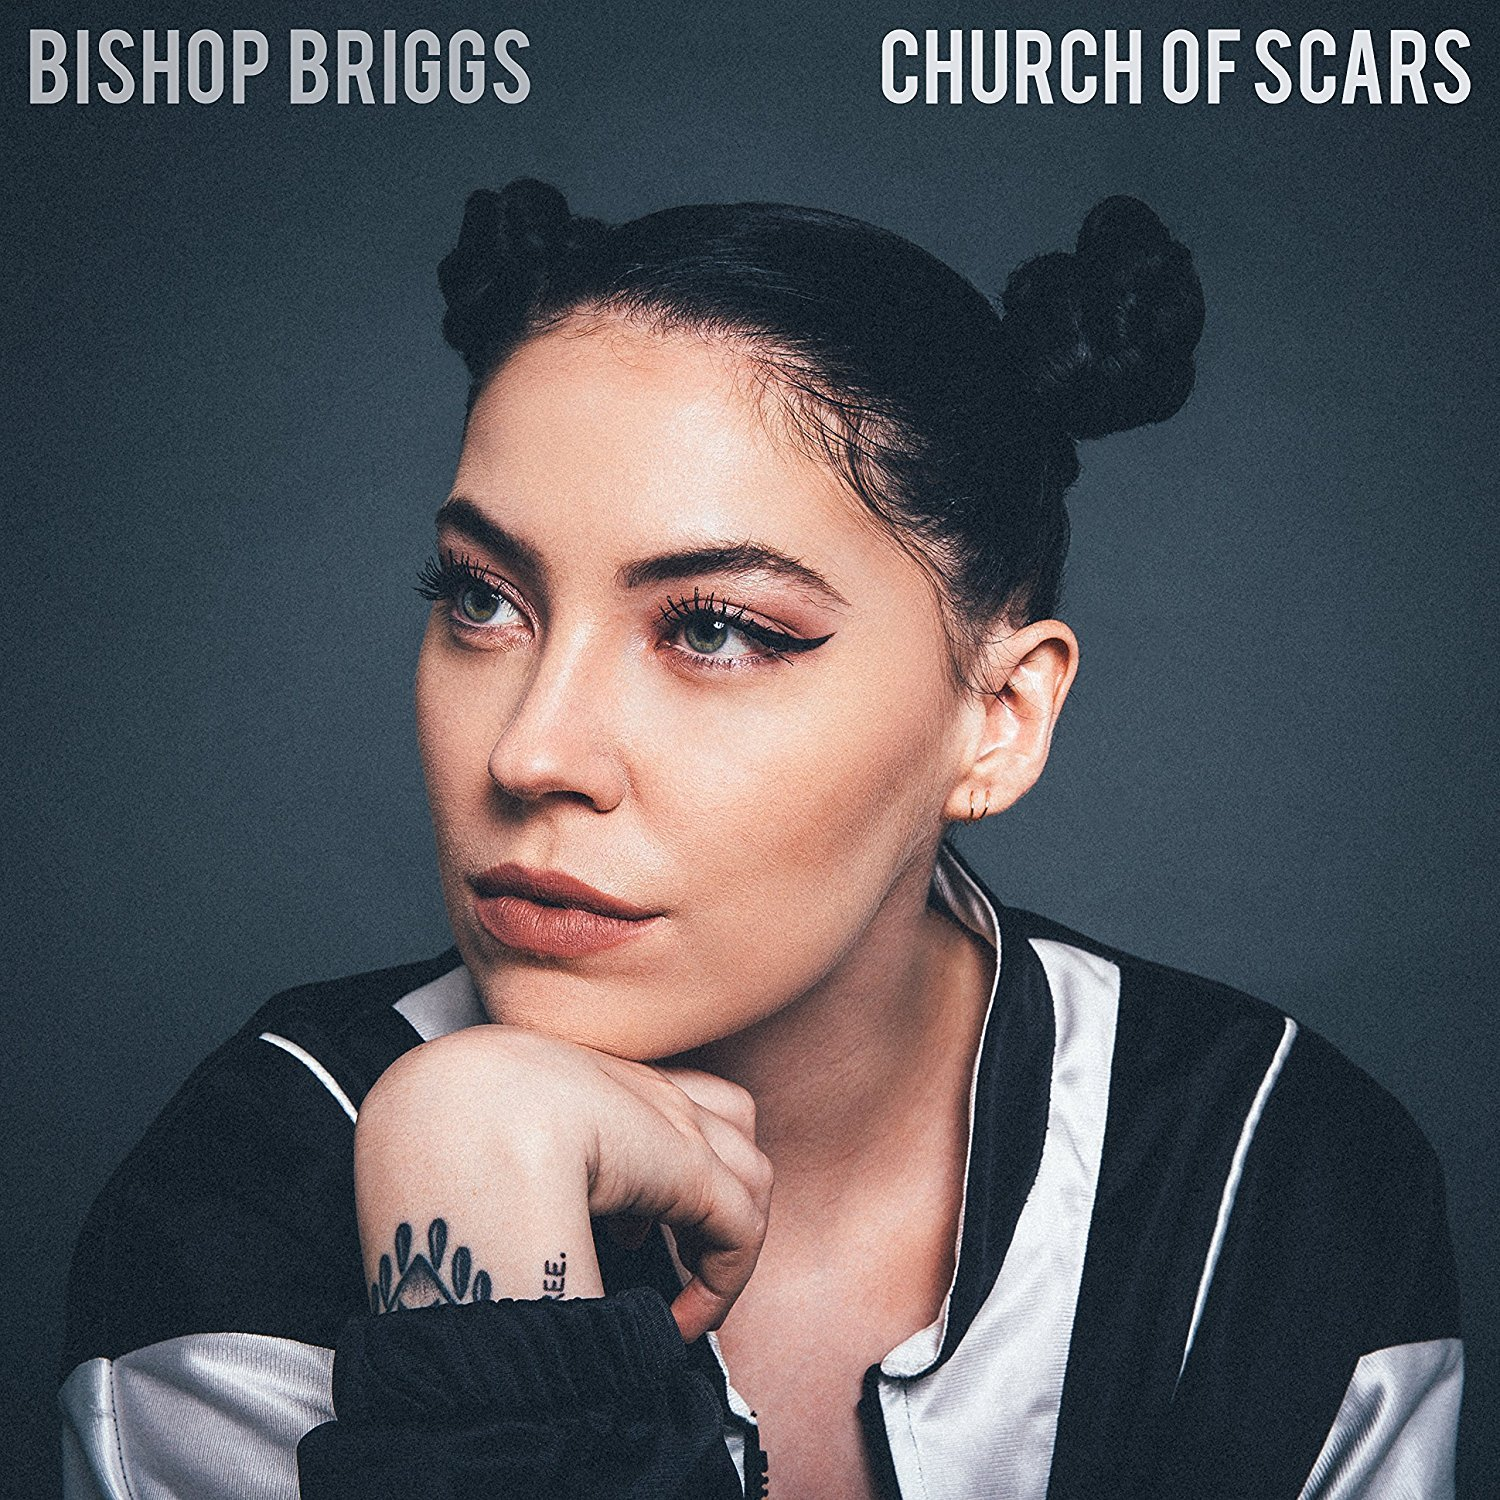 Bishop Briggs, Church of Scars